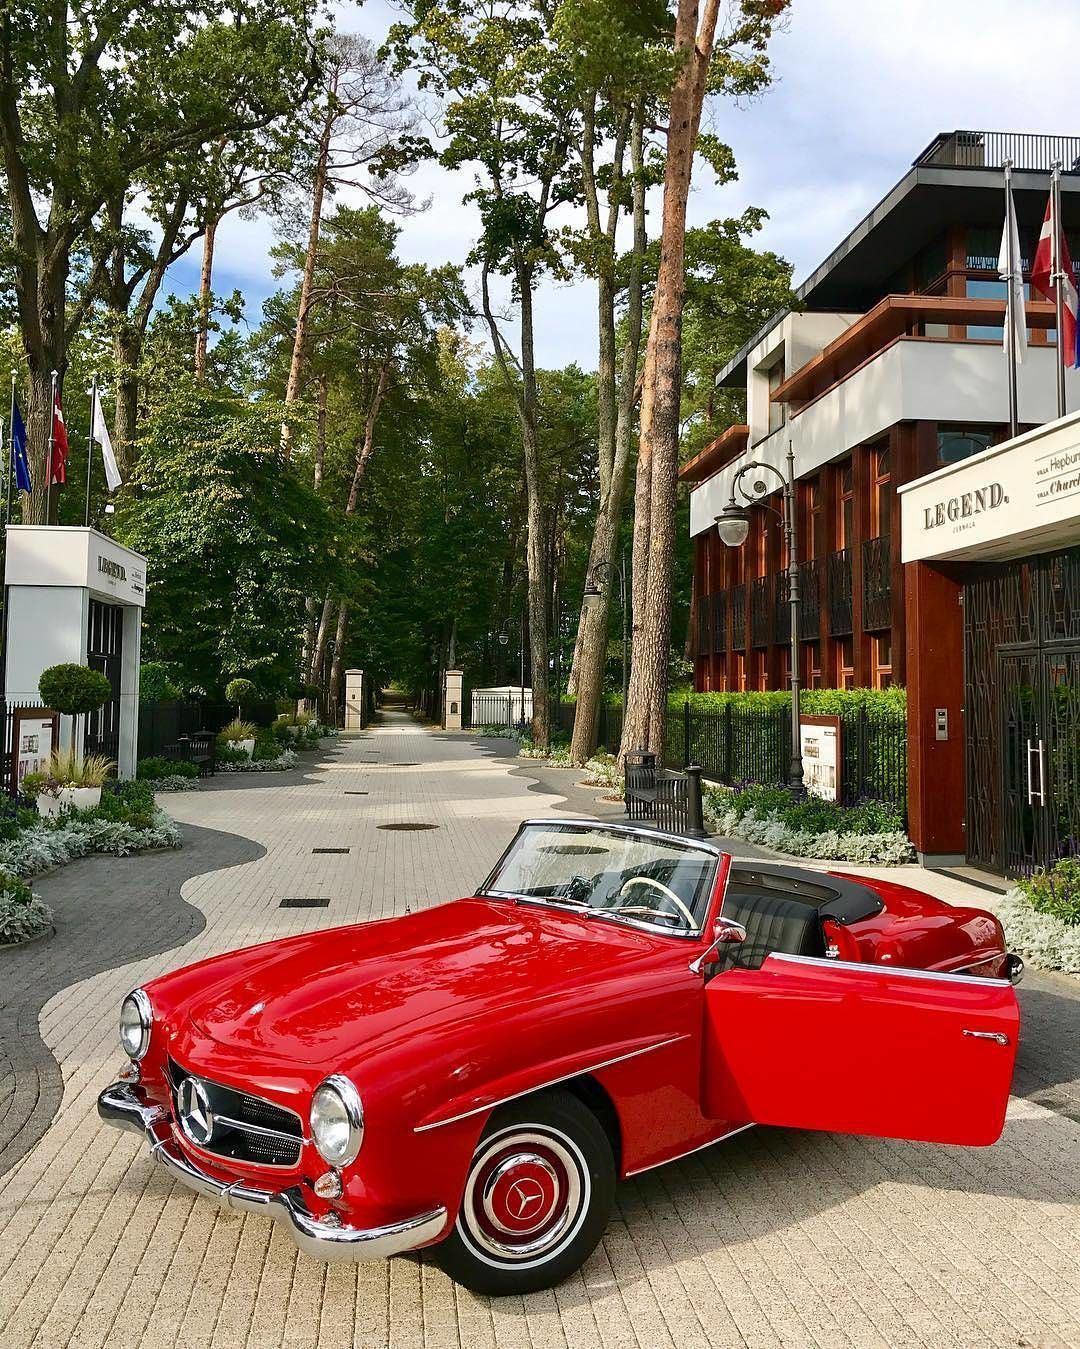 what a wonderful 1961 mercedes benz 190 sl w121 isn t it what is your favorite color for this エキゾチックカー カー エキゾチック pinterest